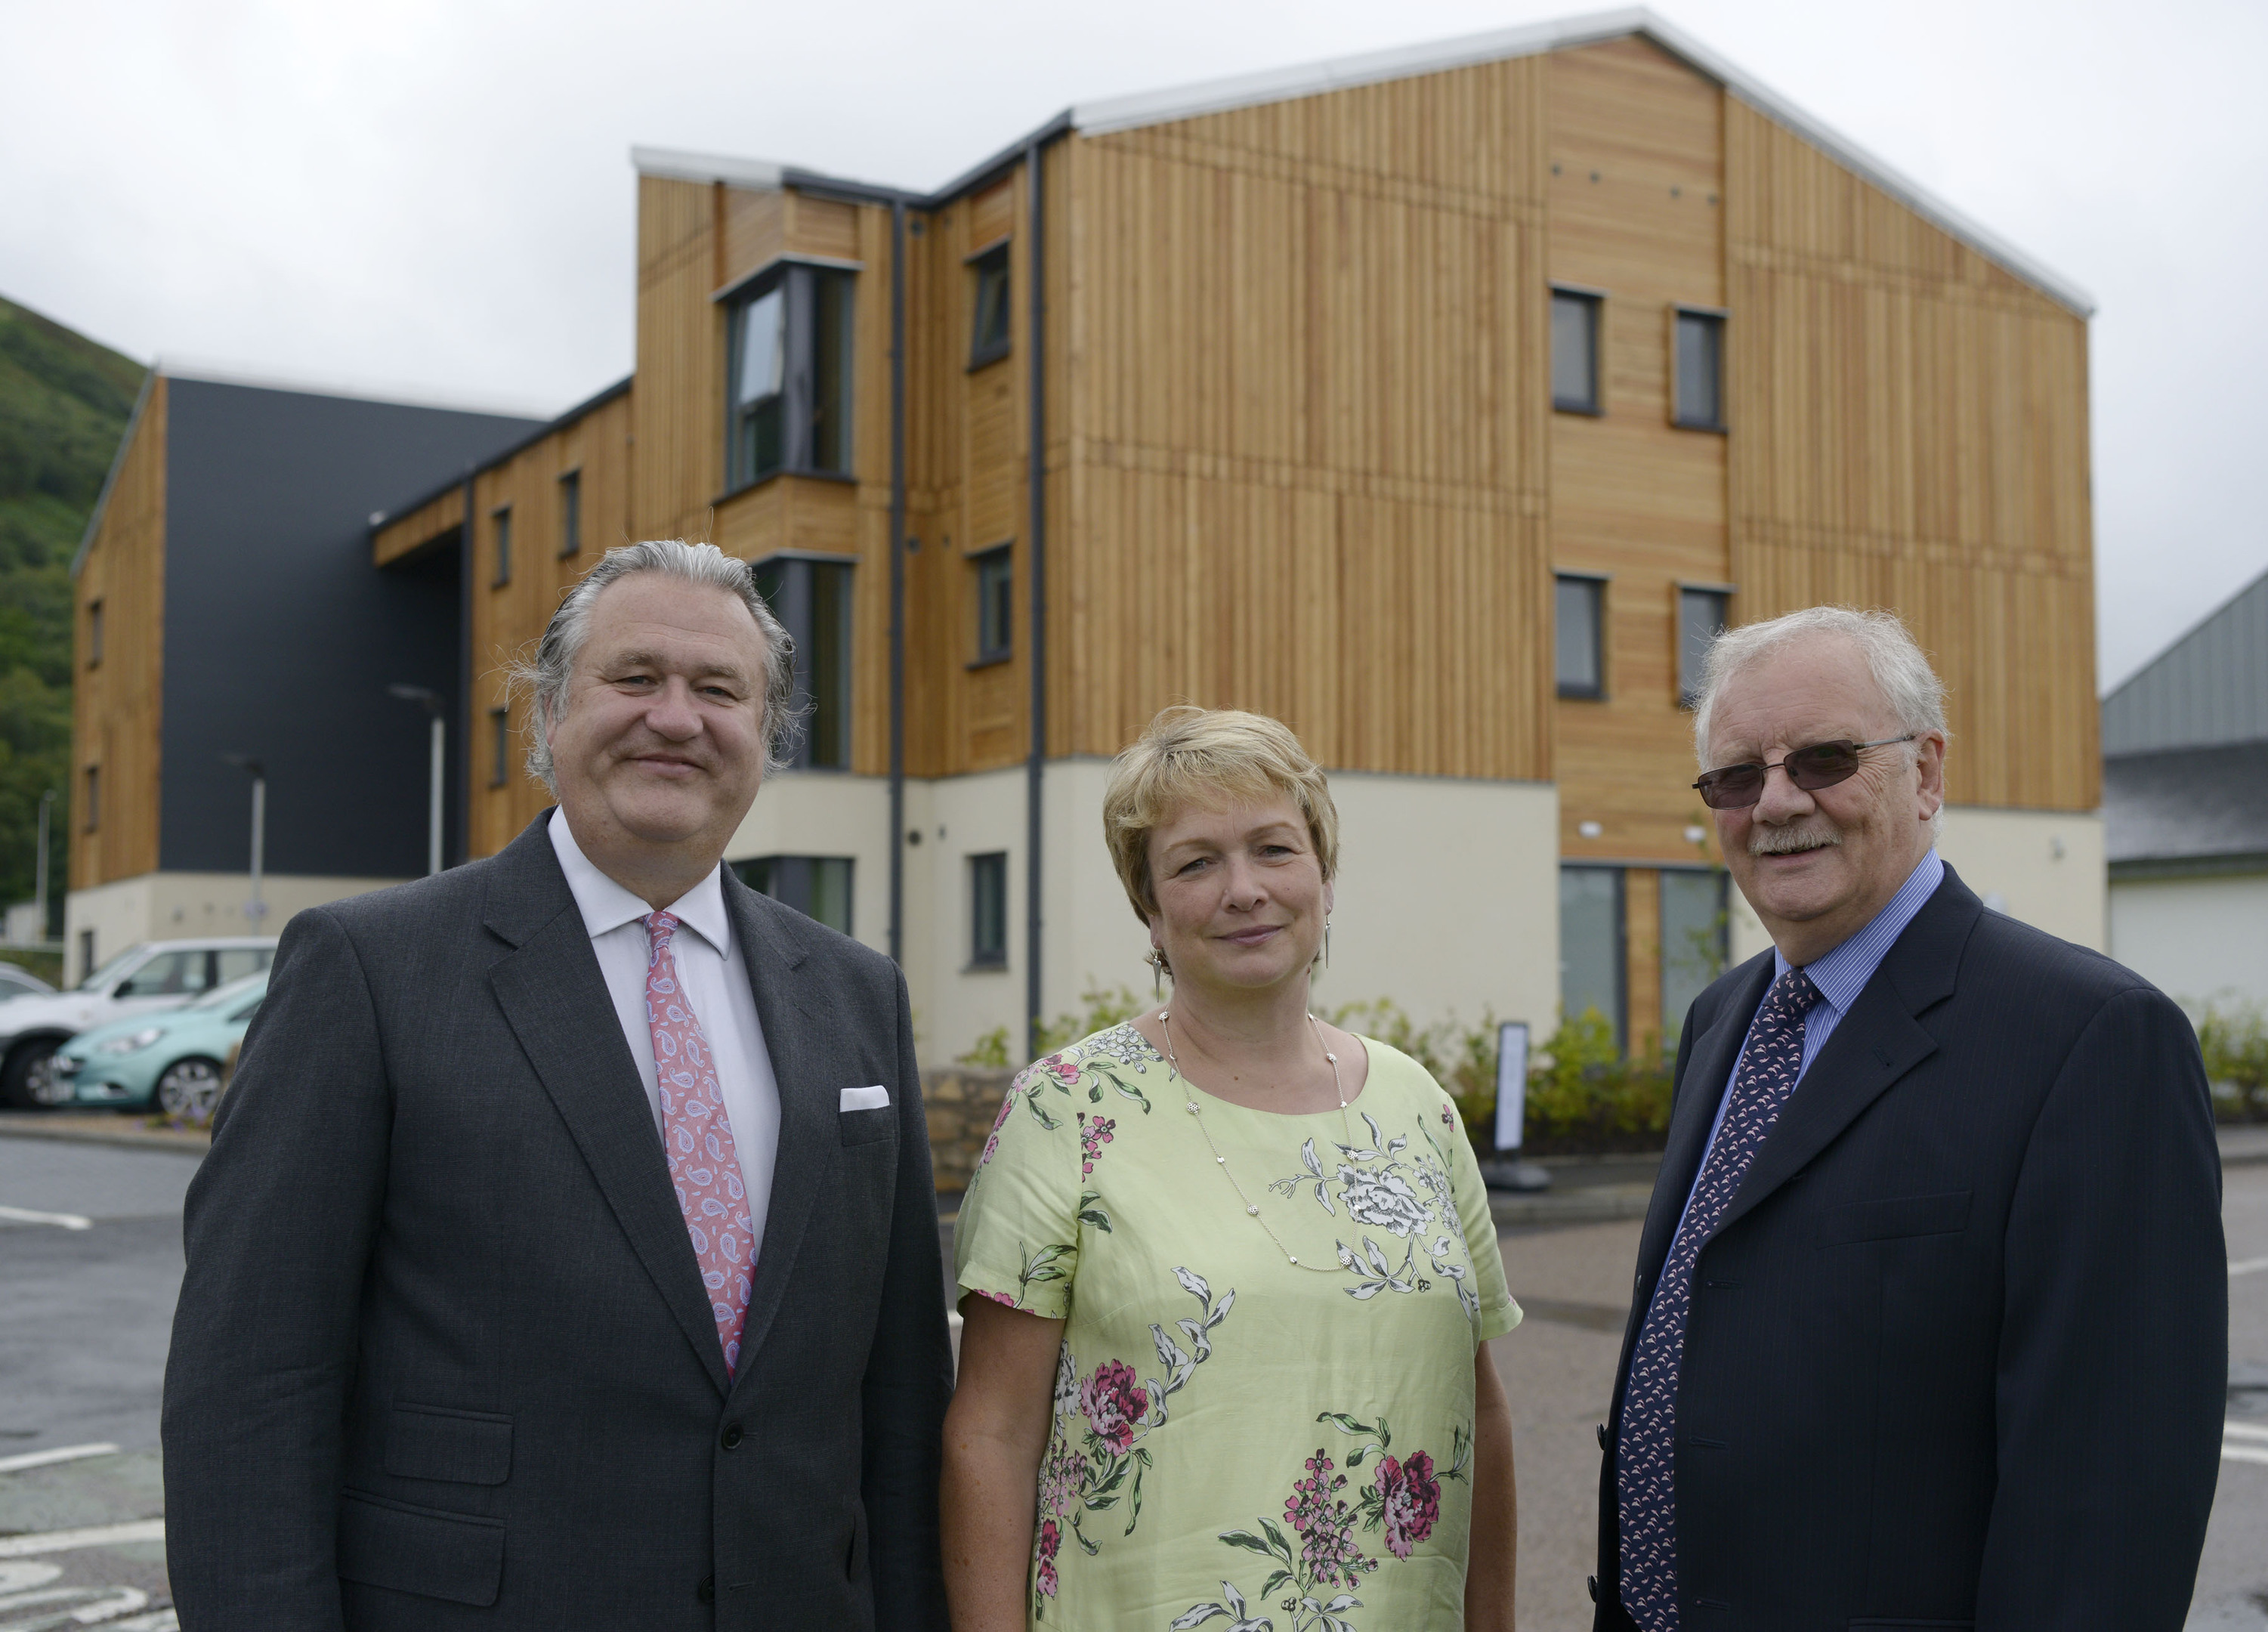 Patrick Hughes (left), of Cityheart, with Fiona Larg, of UHI, and Alan Ashworth, of West Highland College UHI, at the new student accommodation